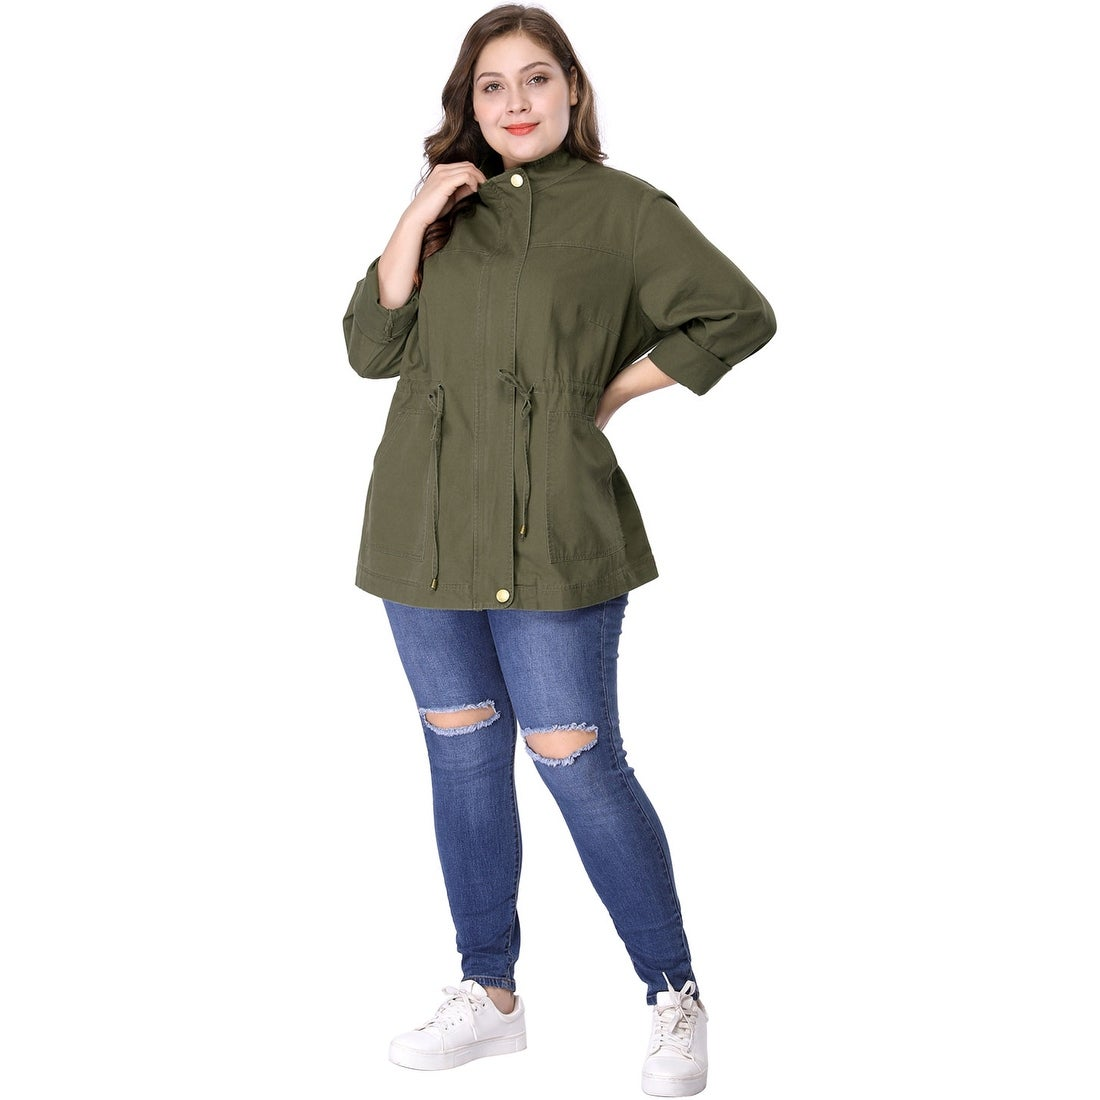 14b7b33cd6d Shop Women s Plus Size Stand Collar Drawstring Utility Jacket - Green - On  Sale - Free Shipping On Orders Over  45 - Overstock.com - 23526950